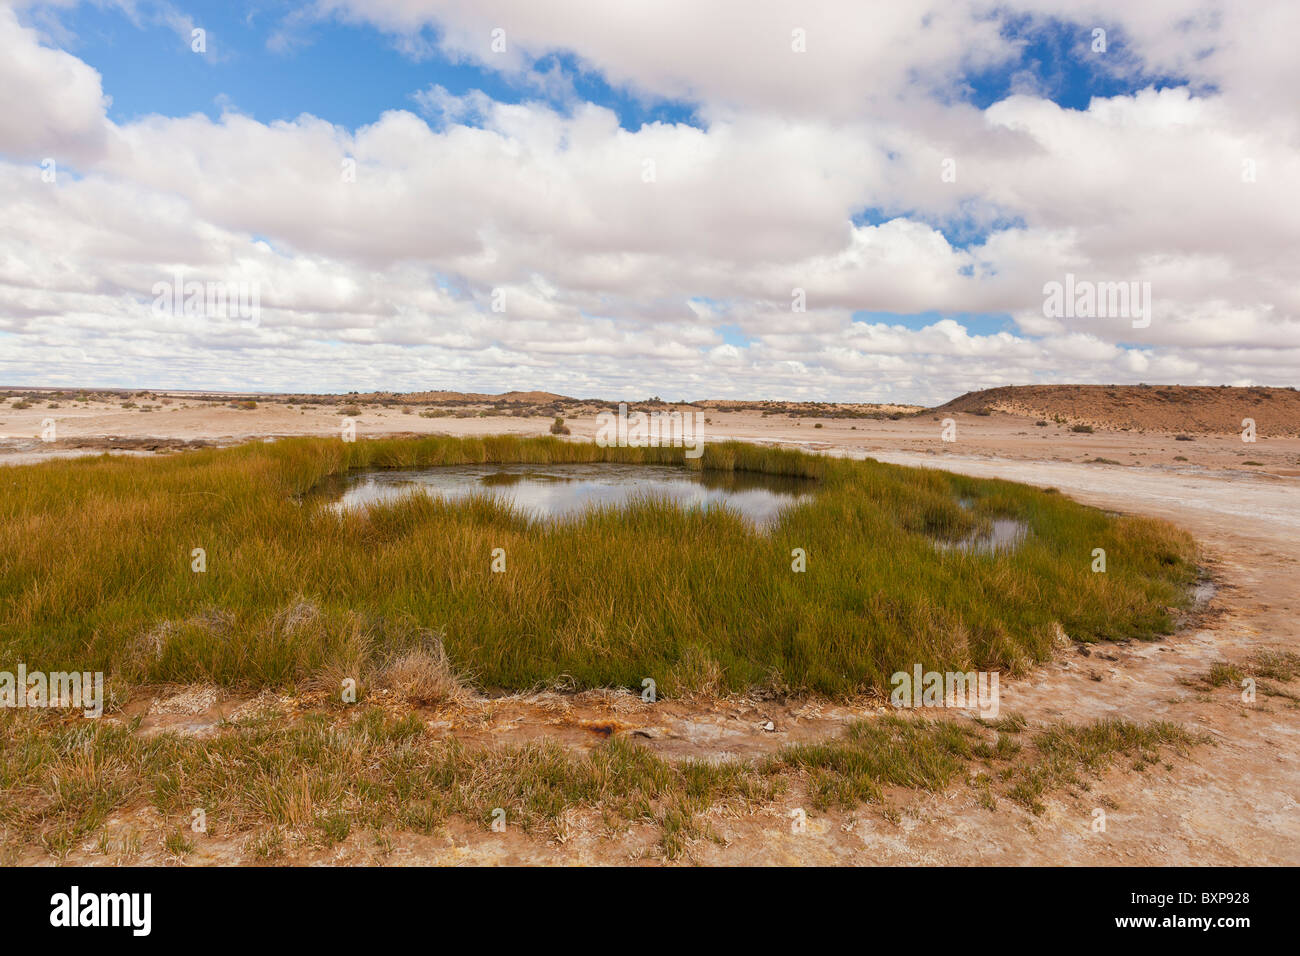 Blanche Cup Mound Spring on the Oodnadatta Track in South Australia's Outback Stock Photo